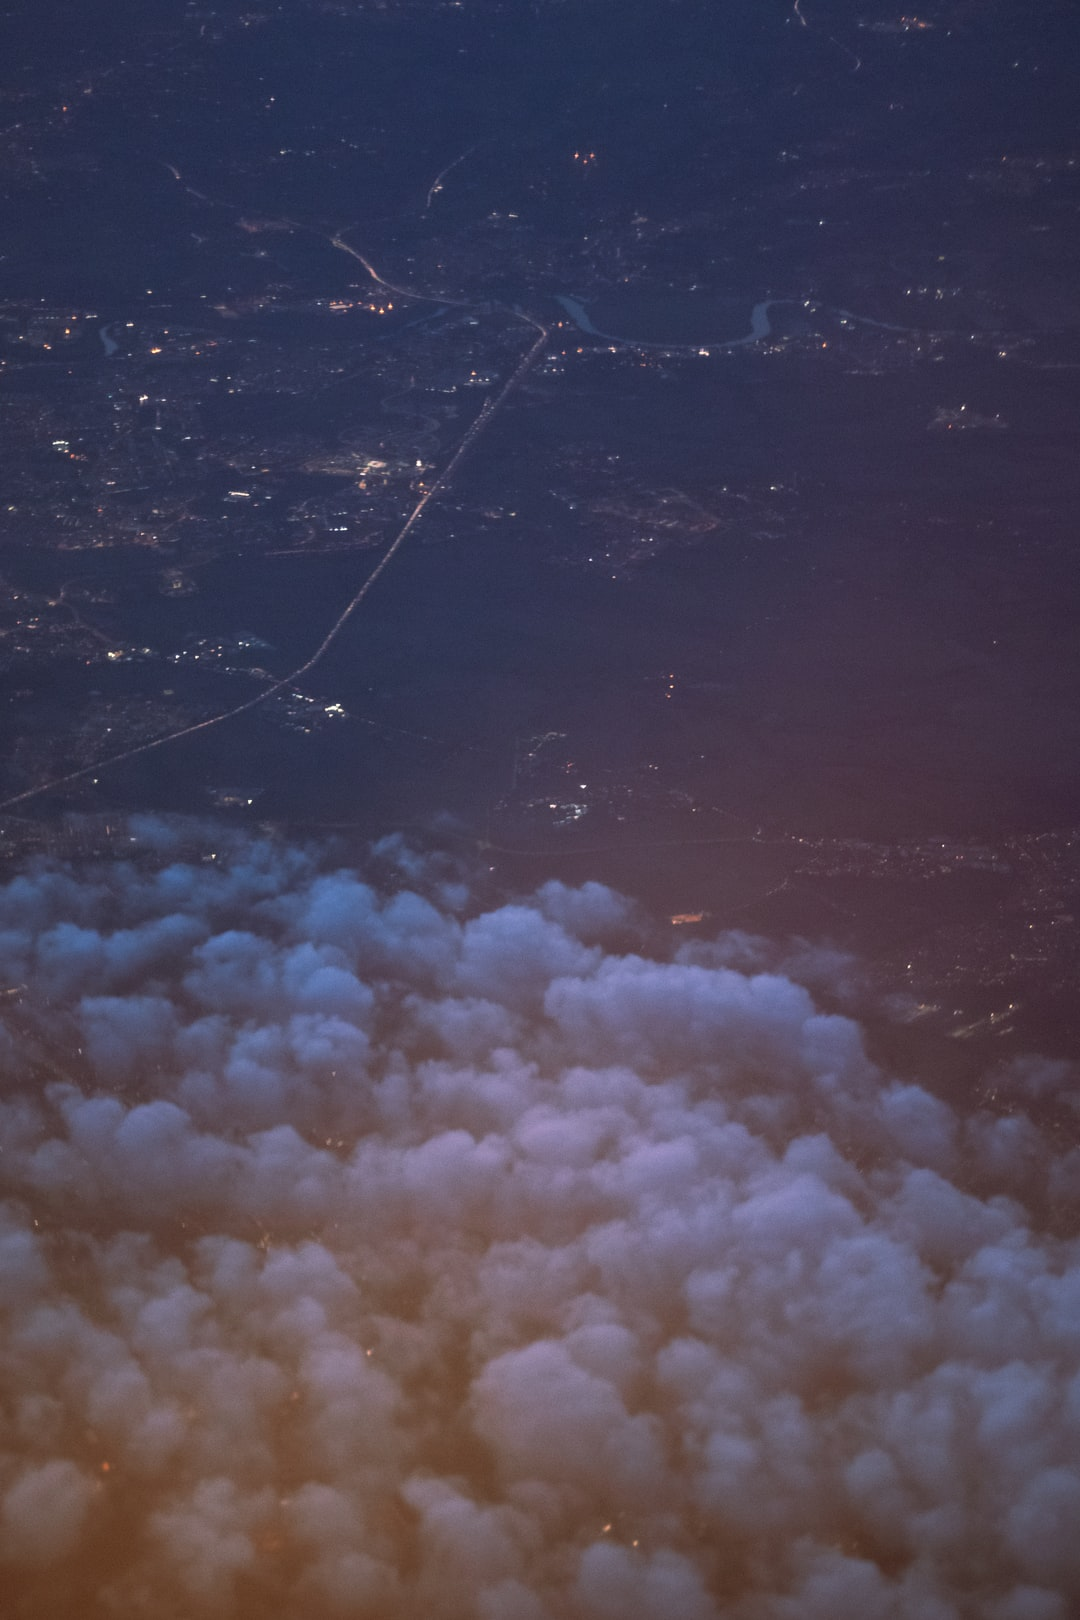 View from the airplane, over Europe